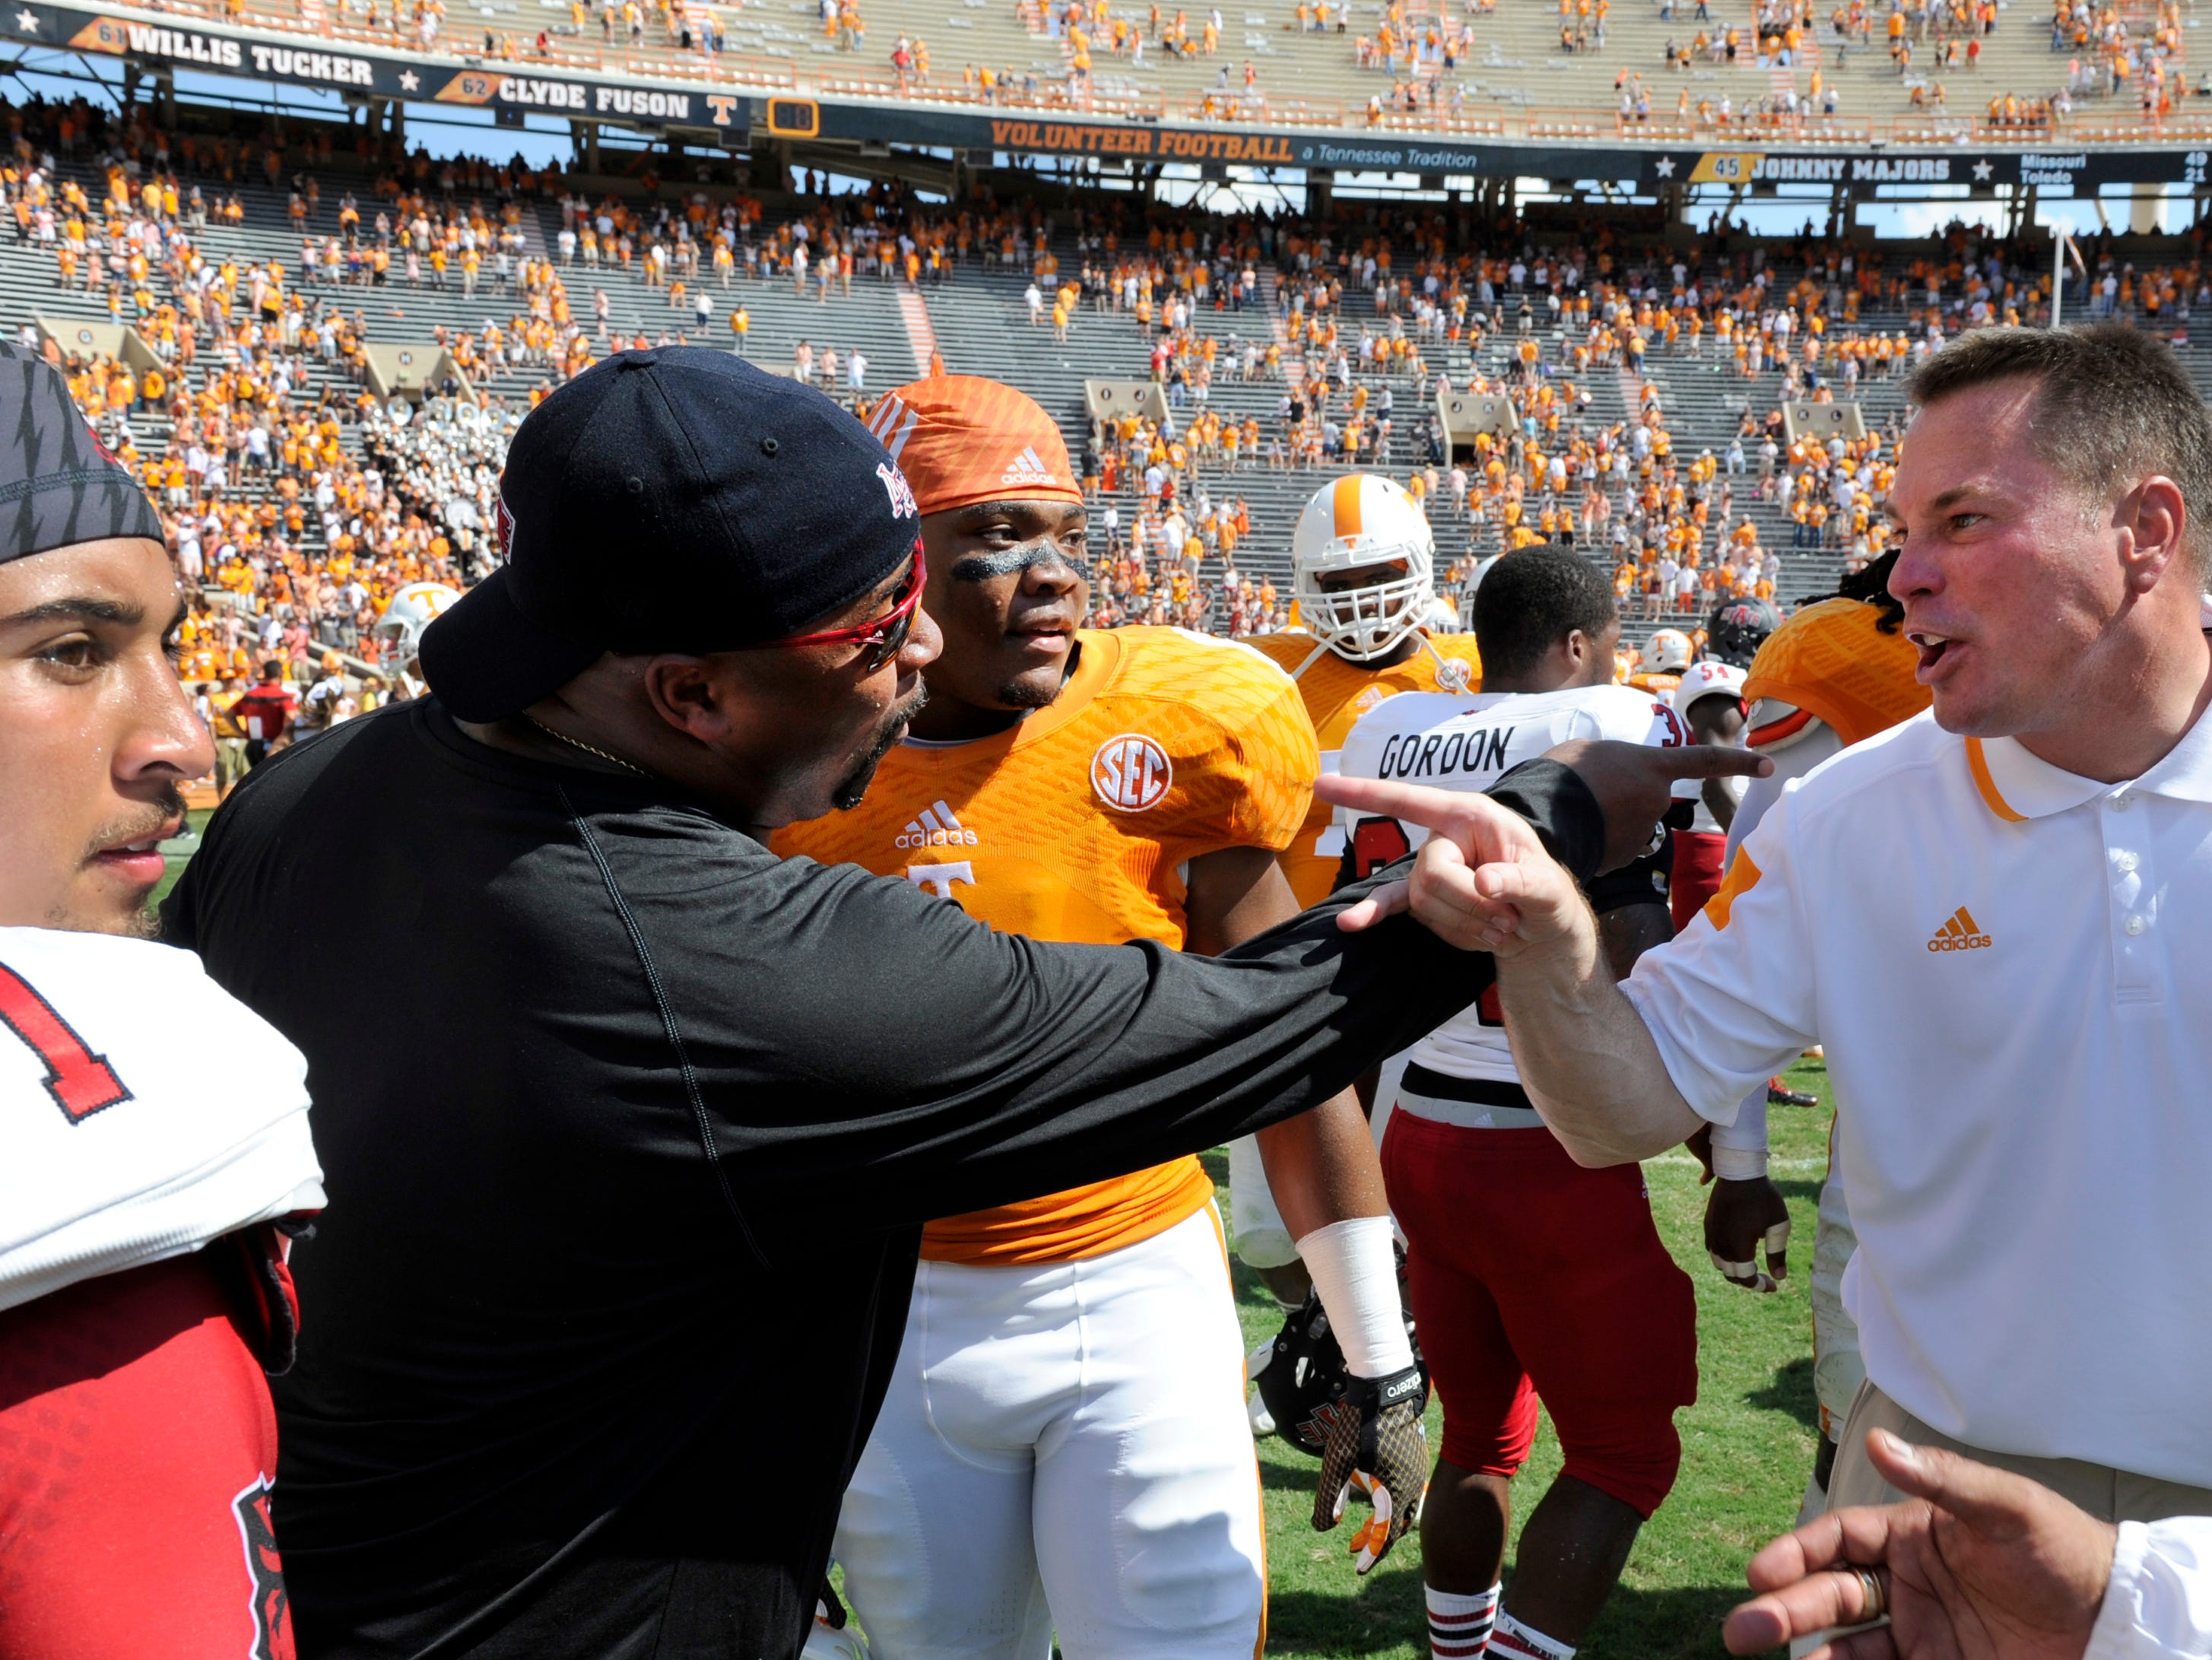 Arkansas State assistant coach Trooper Tayor and Tennessee coach Butch Jones gesture at each other following the game at Neyland Stadium, Saturday, Sept. 6, 2014 in Knoxville, Tenn.  MICHAEL PATRICK/NEWS SENTINEL